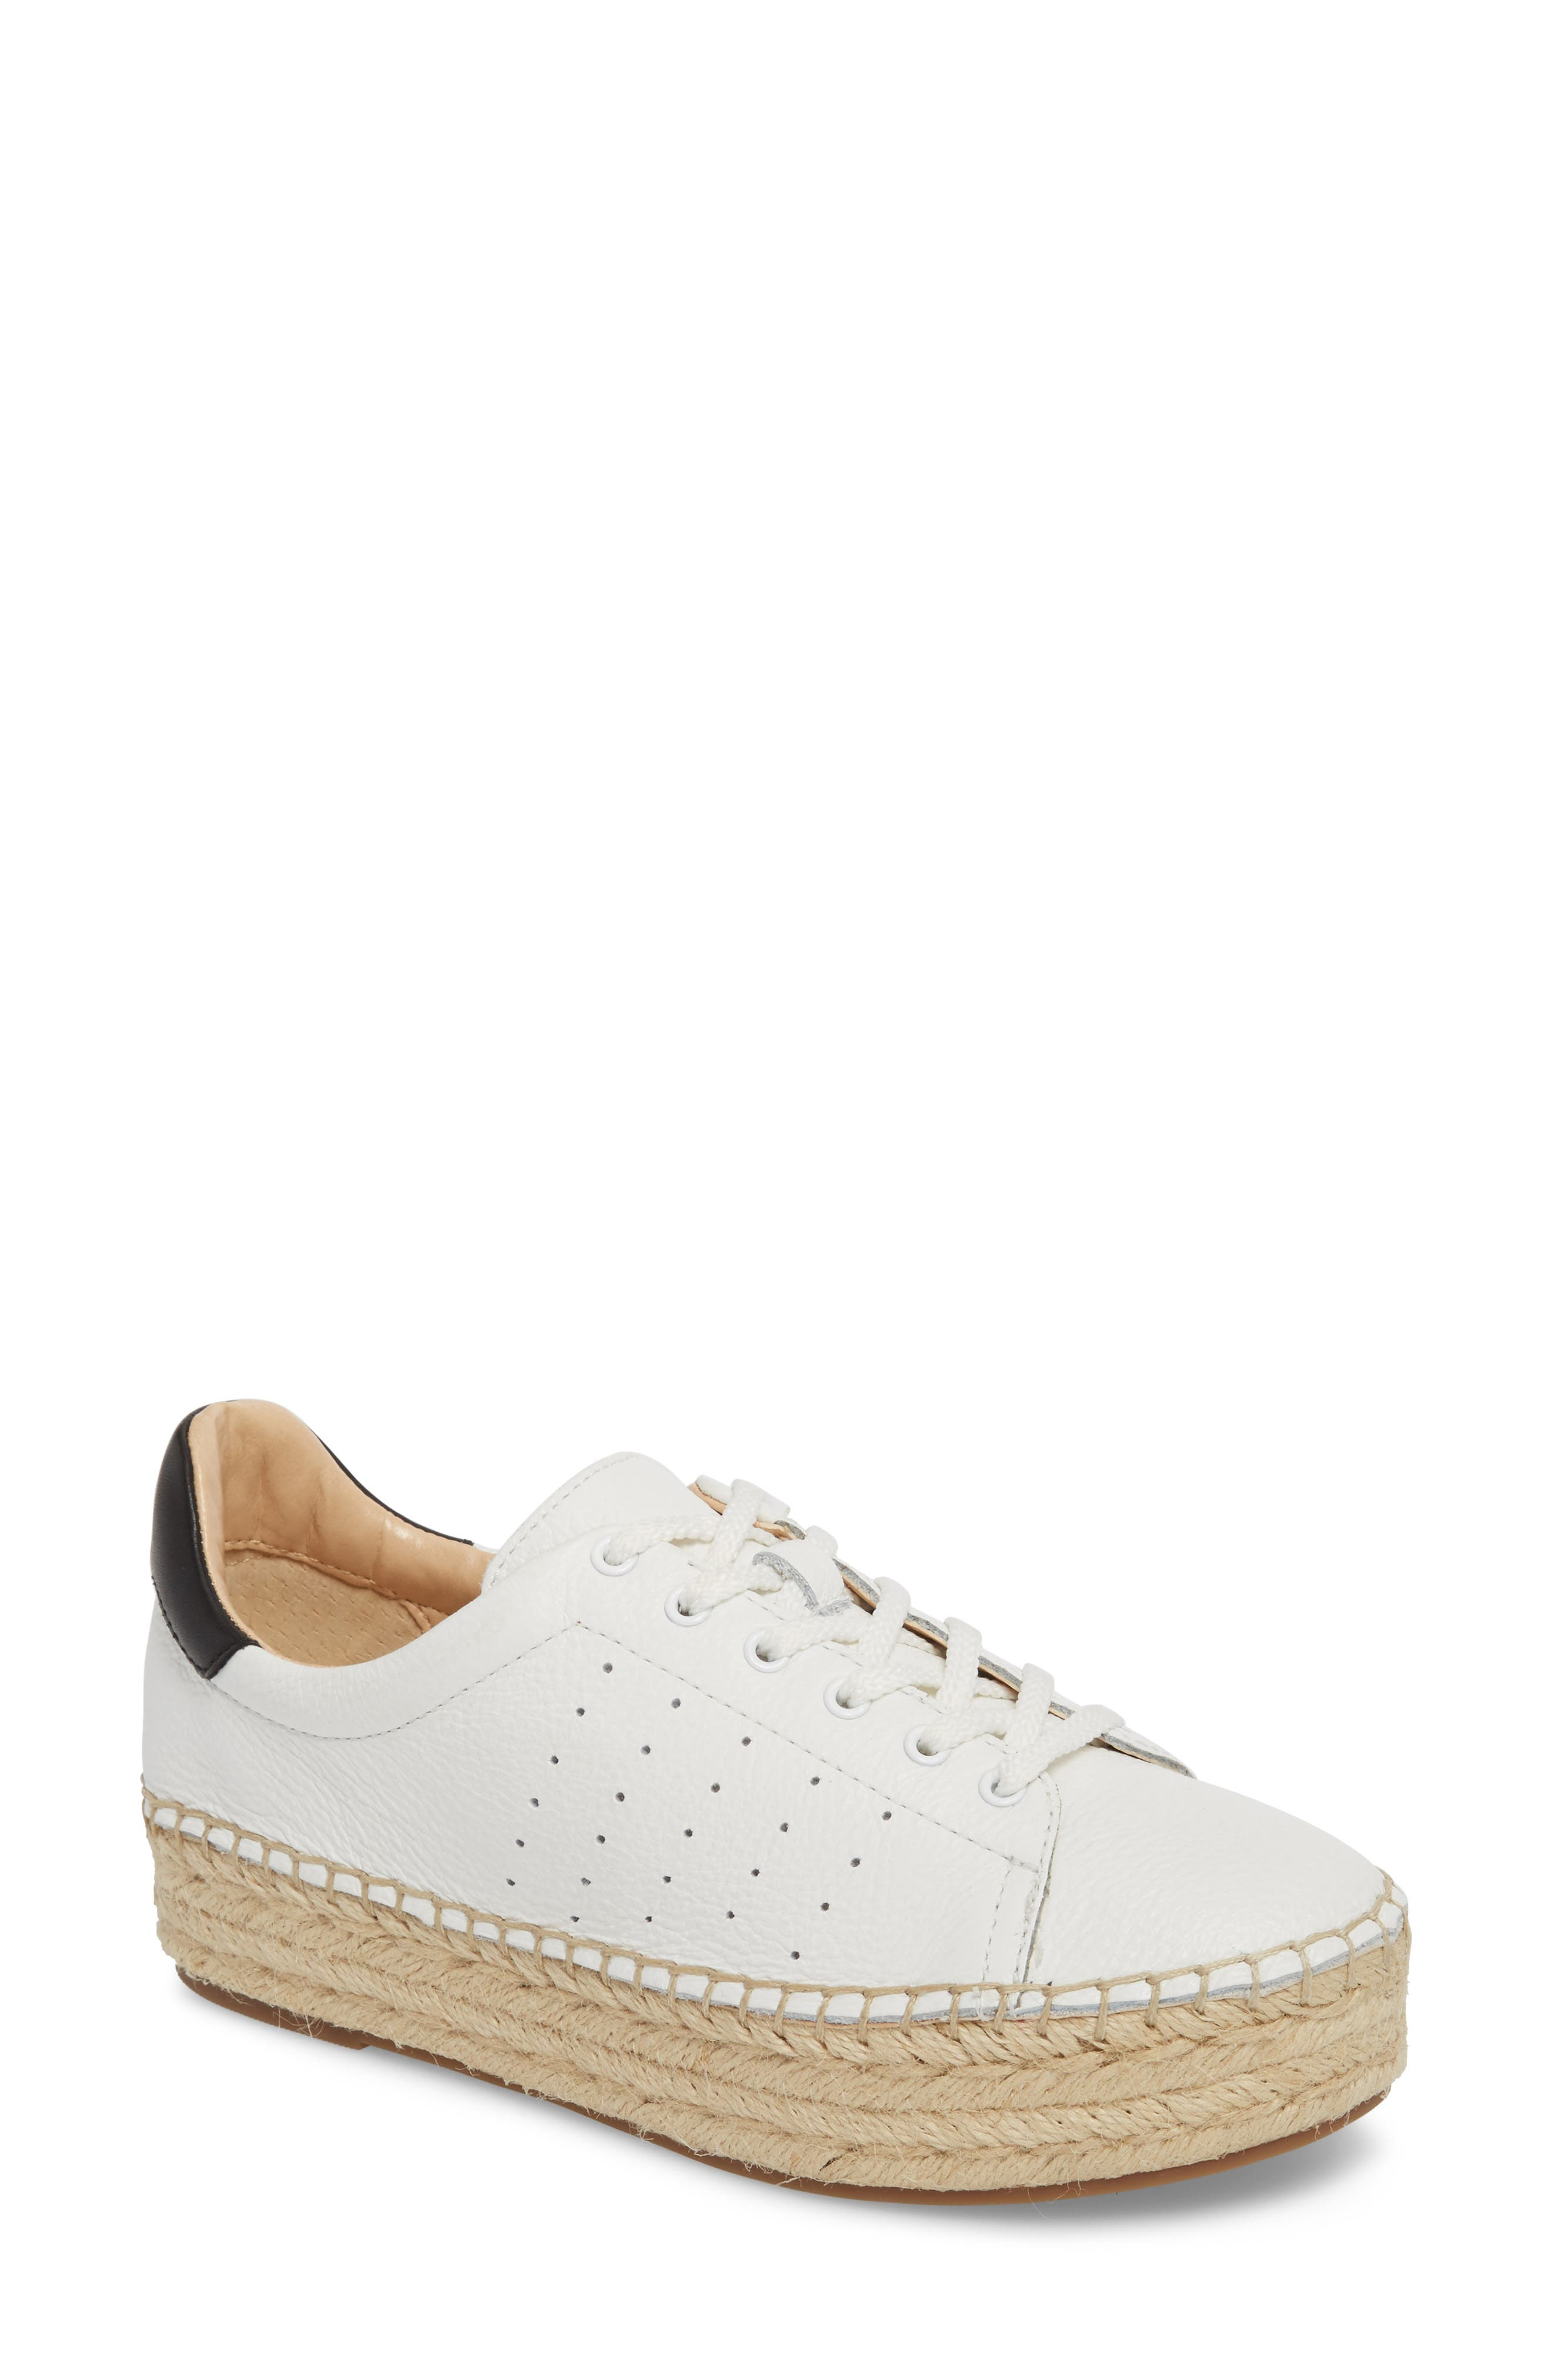 Jinnie Espadrille Sneaker,                             Main thumbnail 1, color,                             Picket Fence